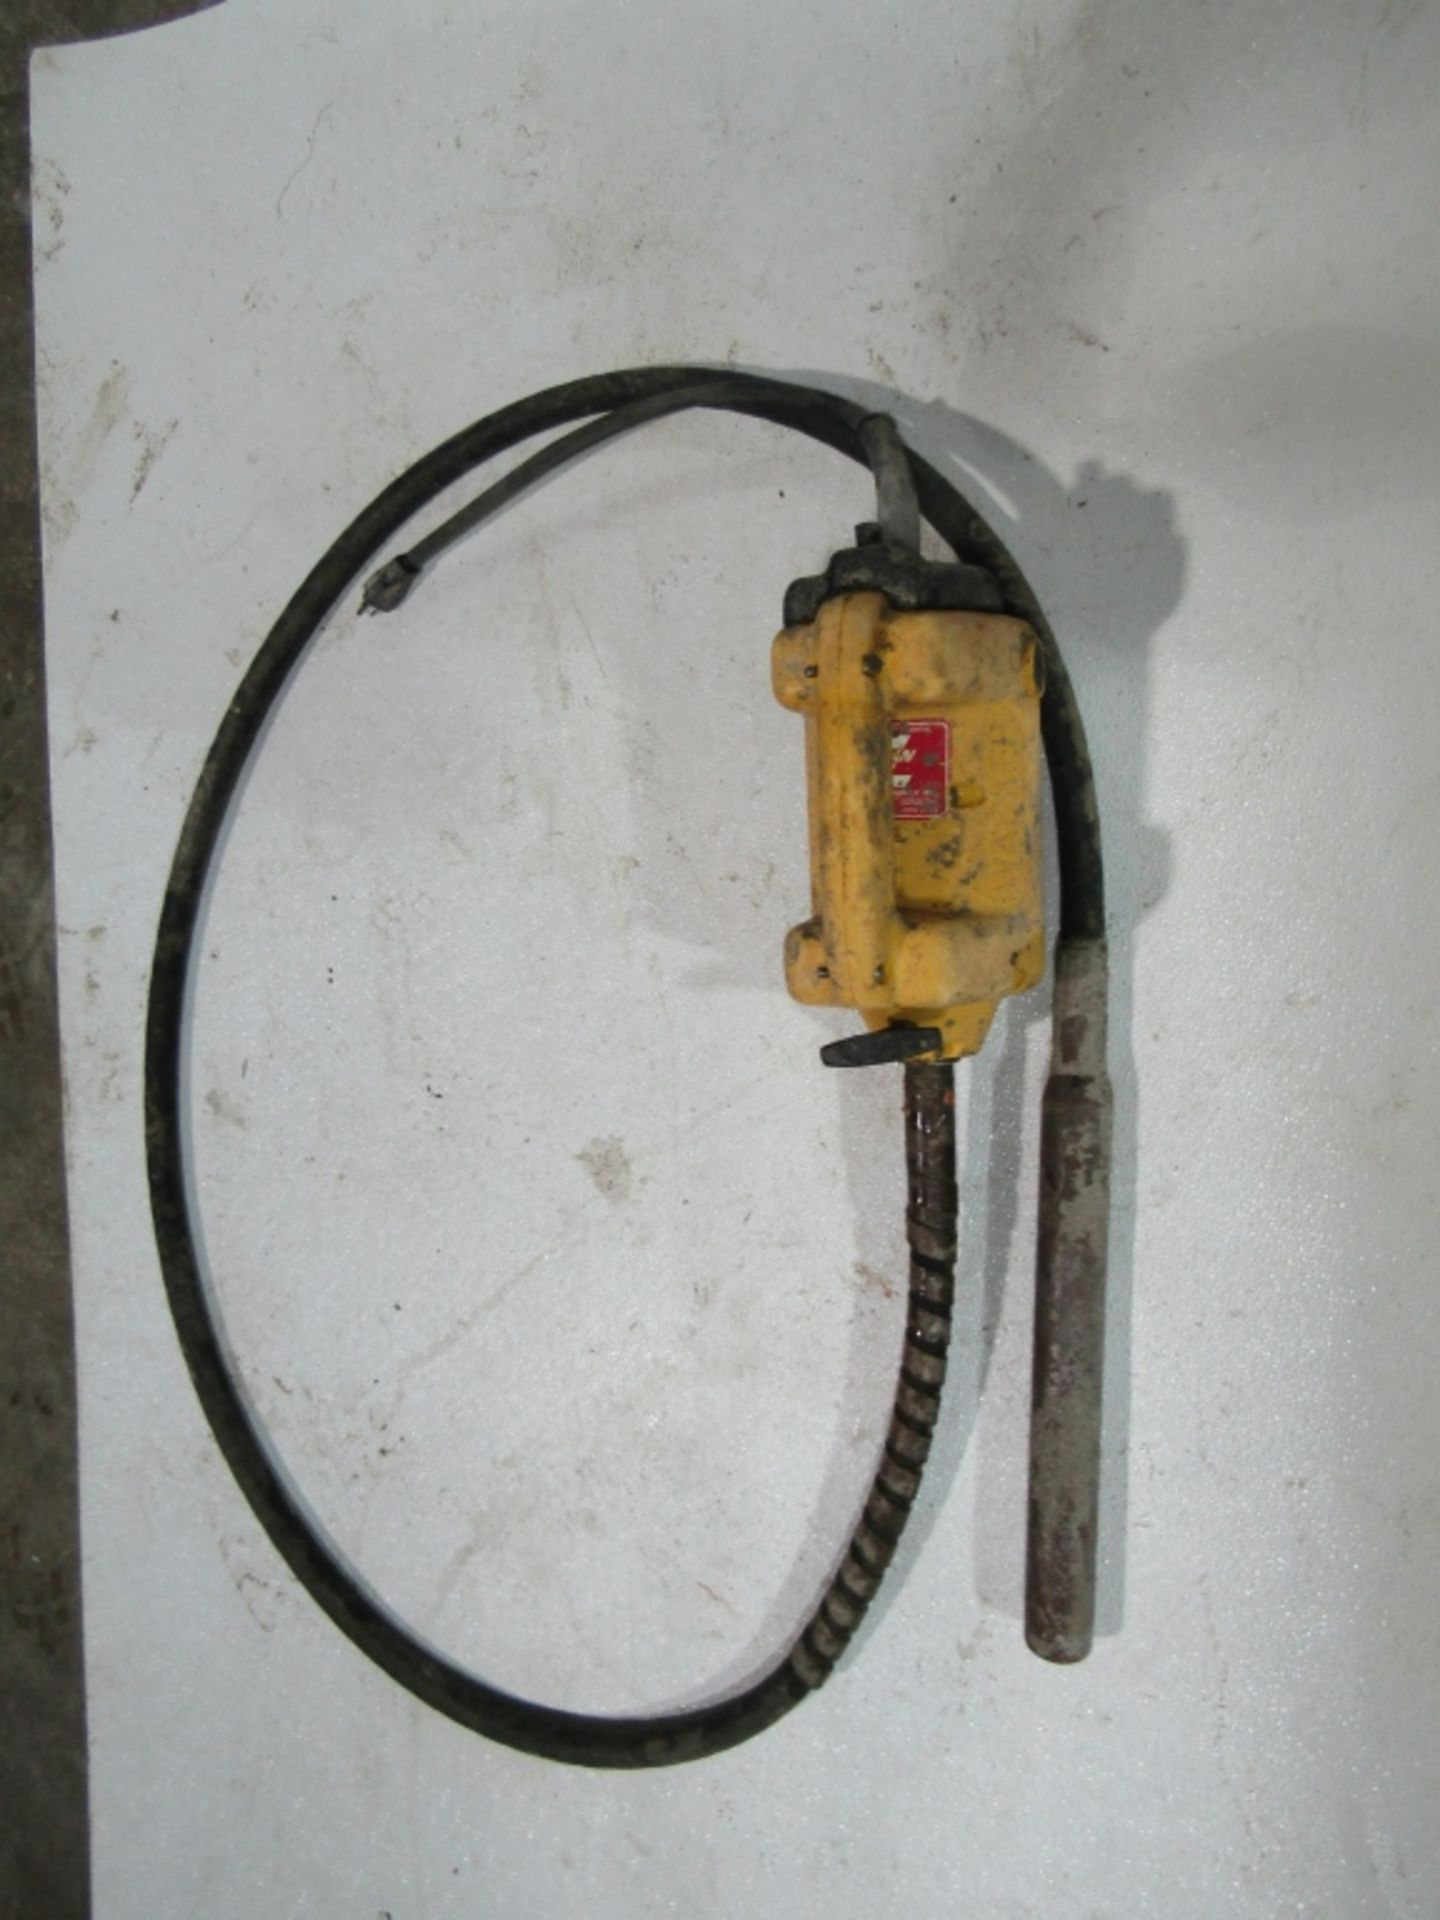 Lot 282 - Tocan Vibrator Whip, Located in Winterset, IA